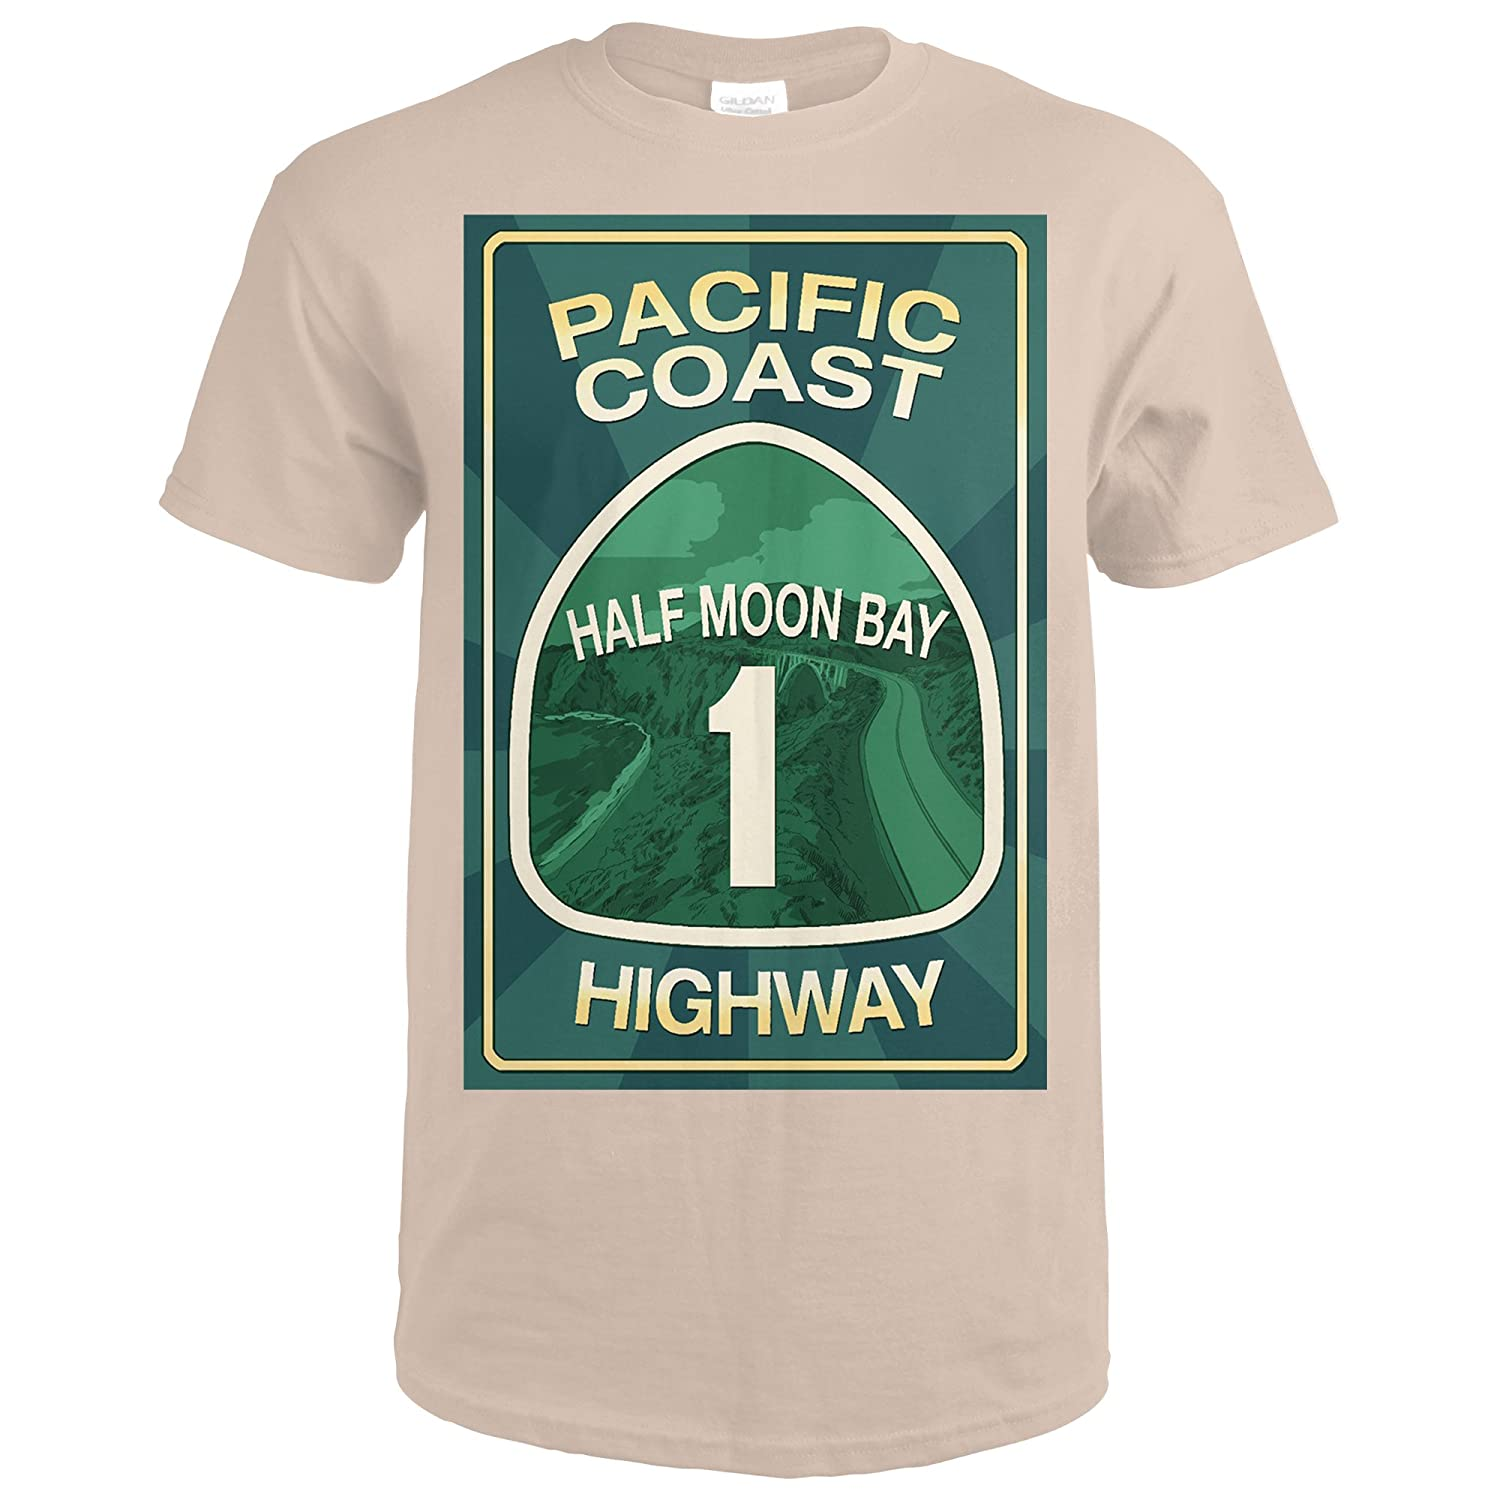 Amazon.com: Highway 1, California - Half Moon Bay - Pacific Coast Highway Sign (Premium T-Shirt): Clothing